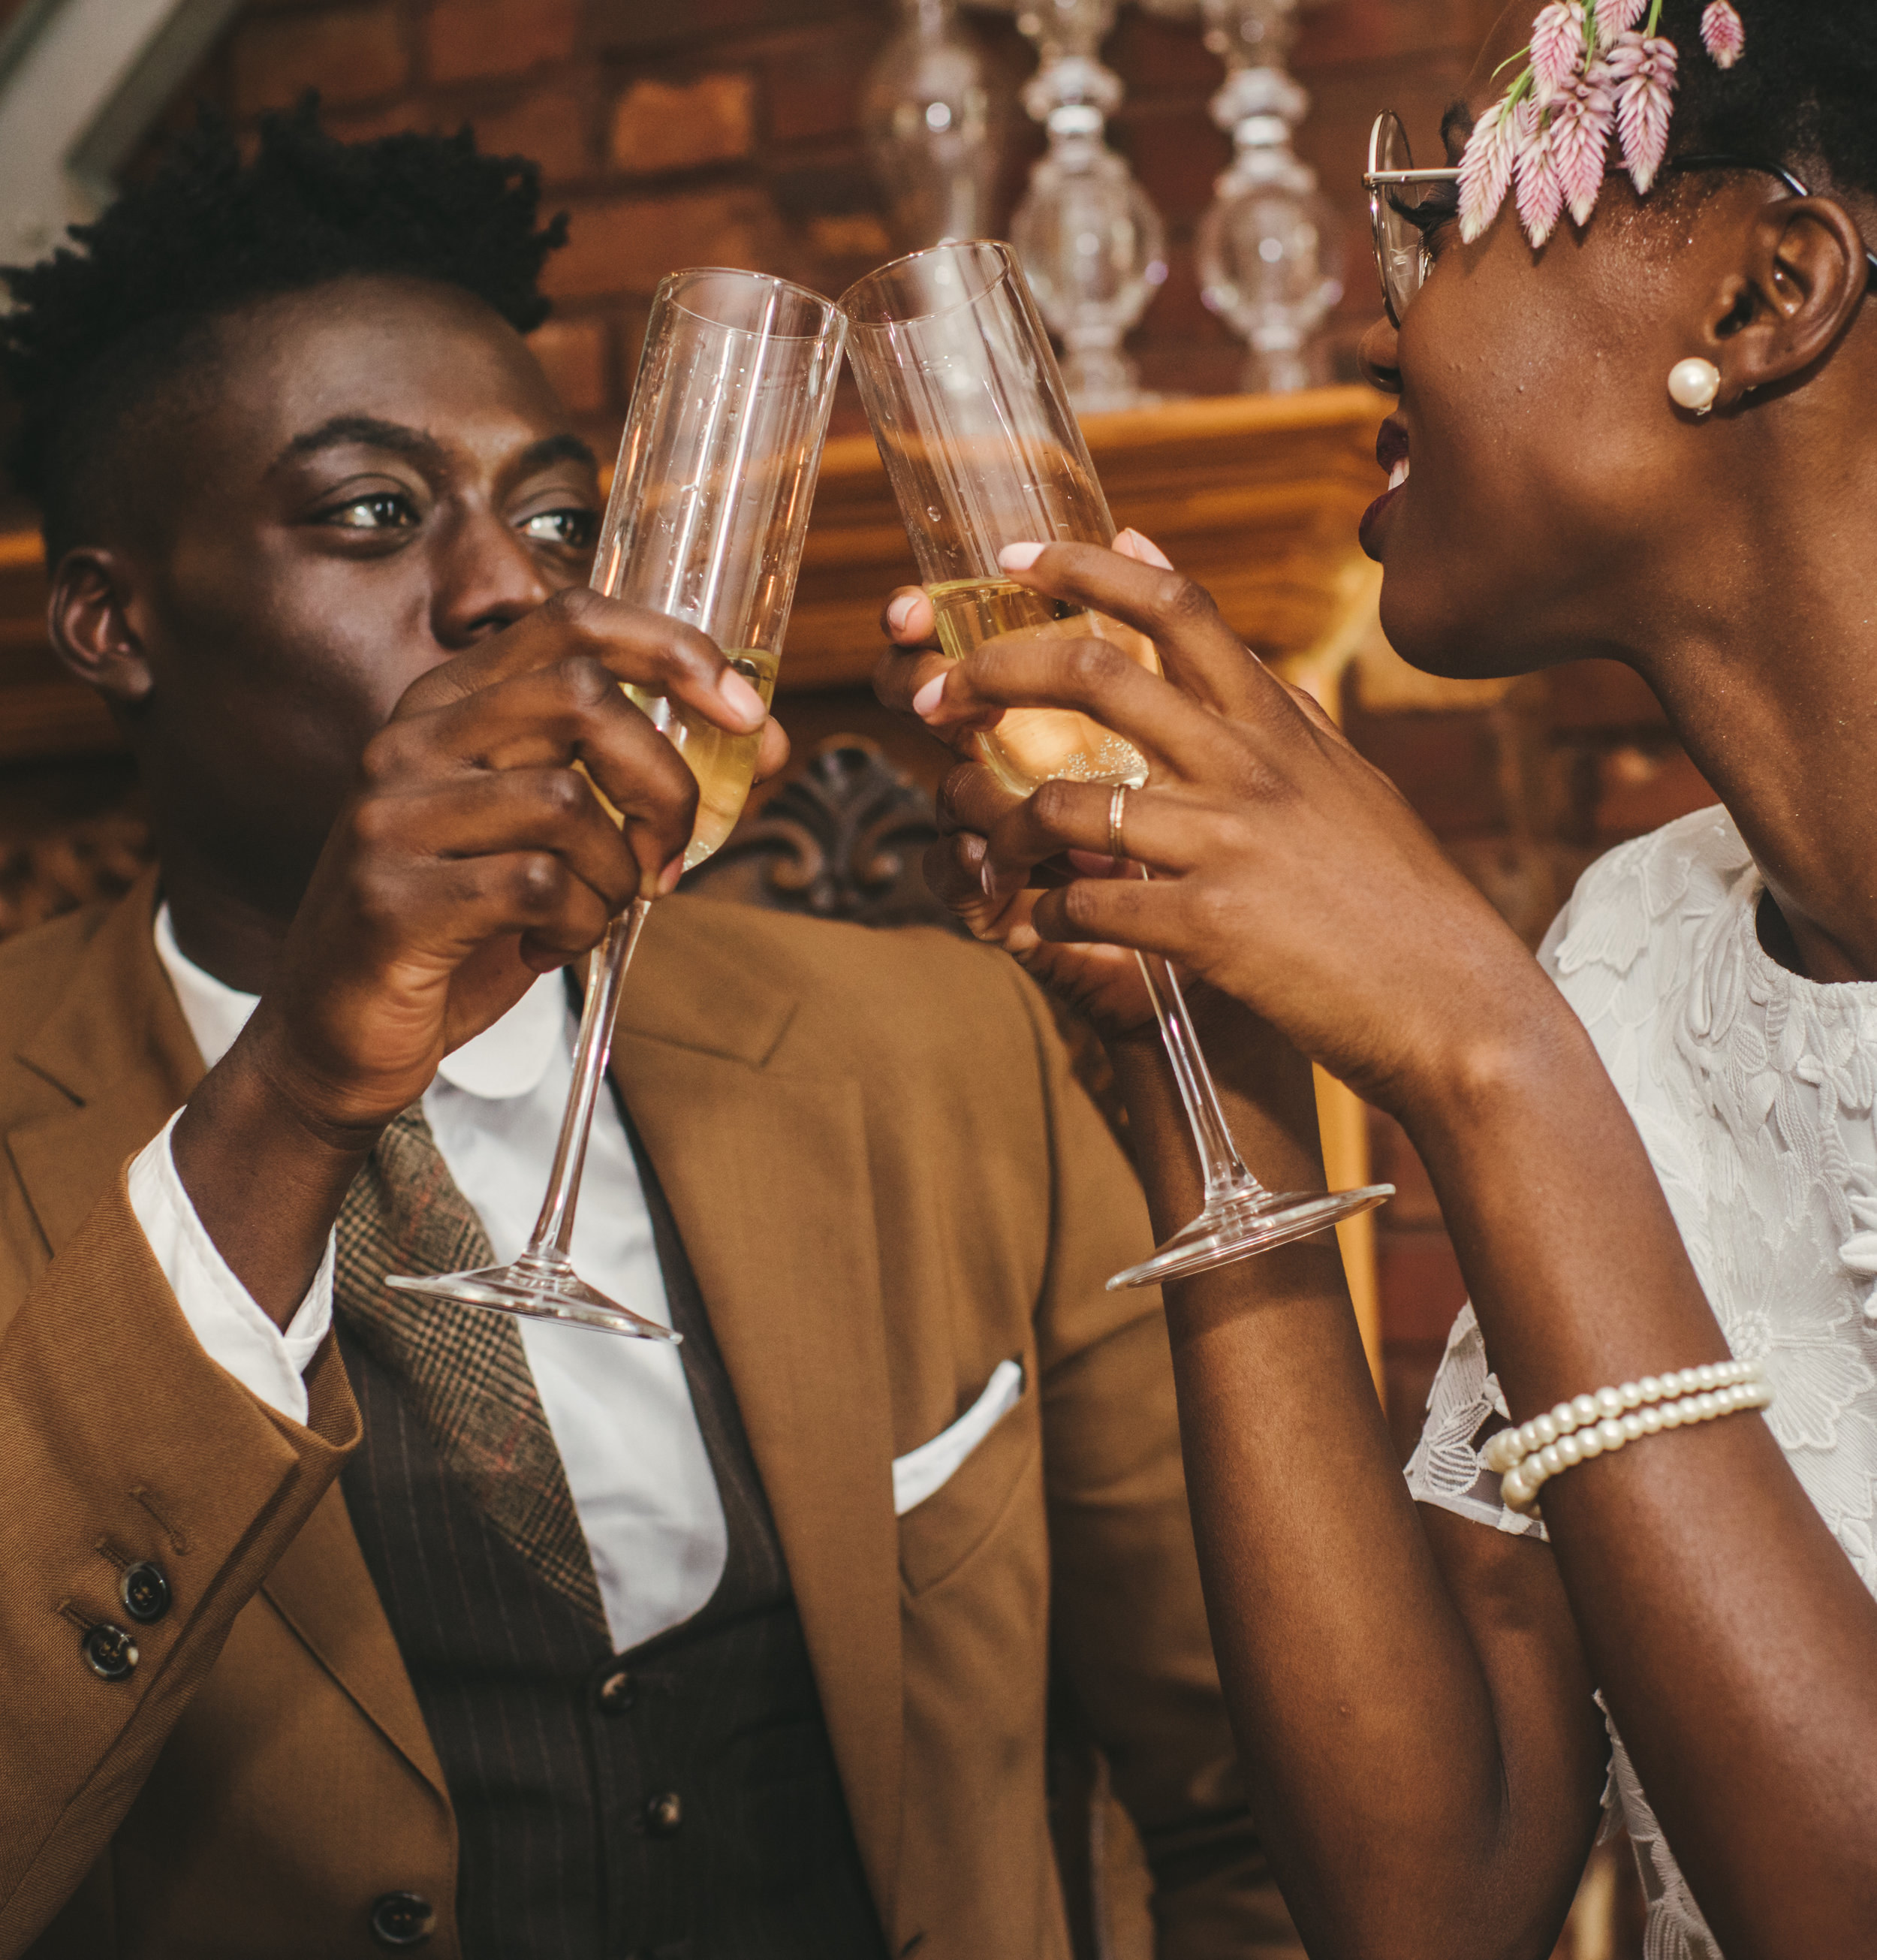 BROOKLYN BRIDE - INTIMATE WEDDING PHOTOGRAPHER - TWOTWENTY by CHI-CHI AGBIM-65.jpg